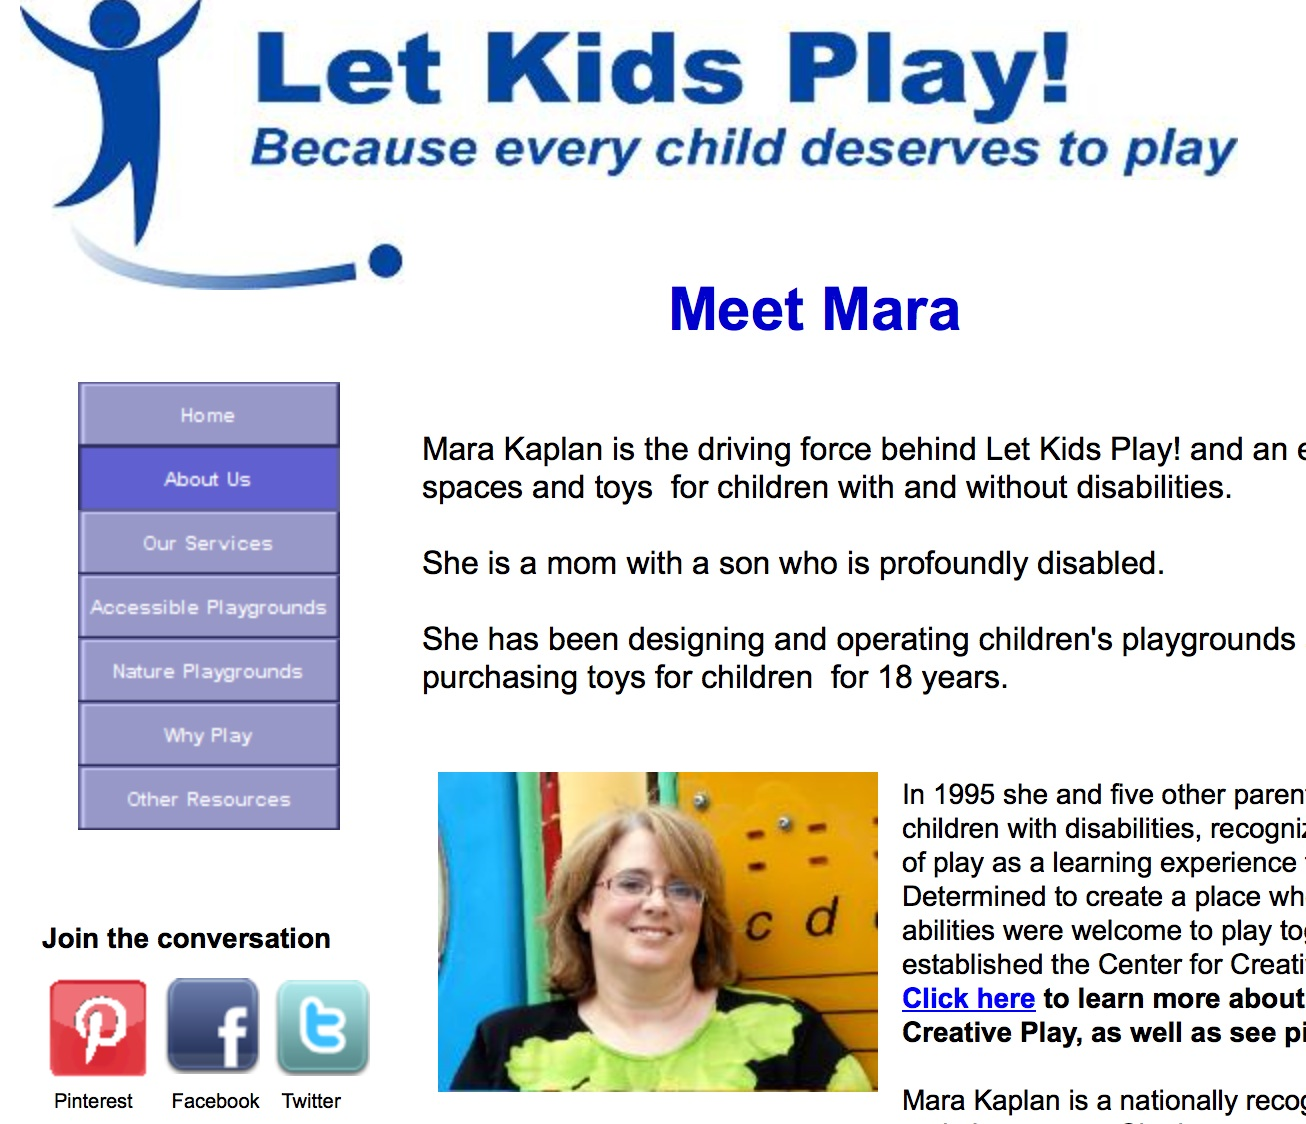 Let Kids Play newspost featured image